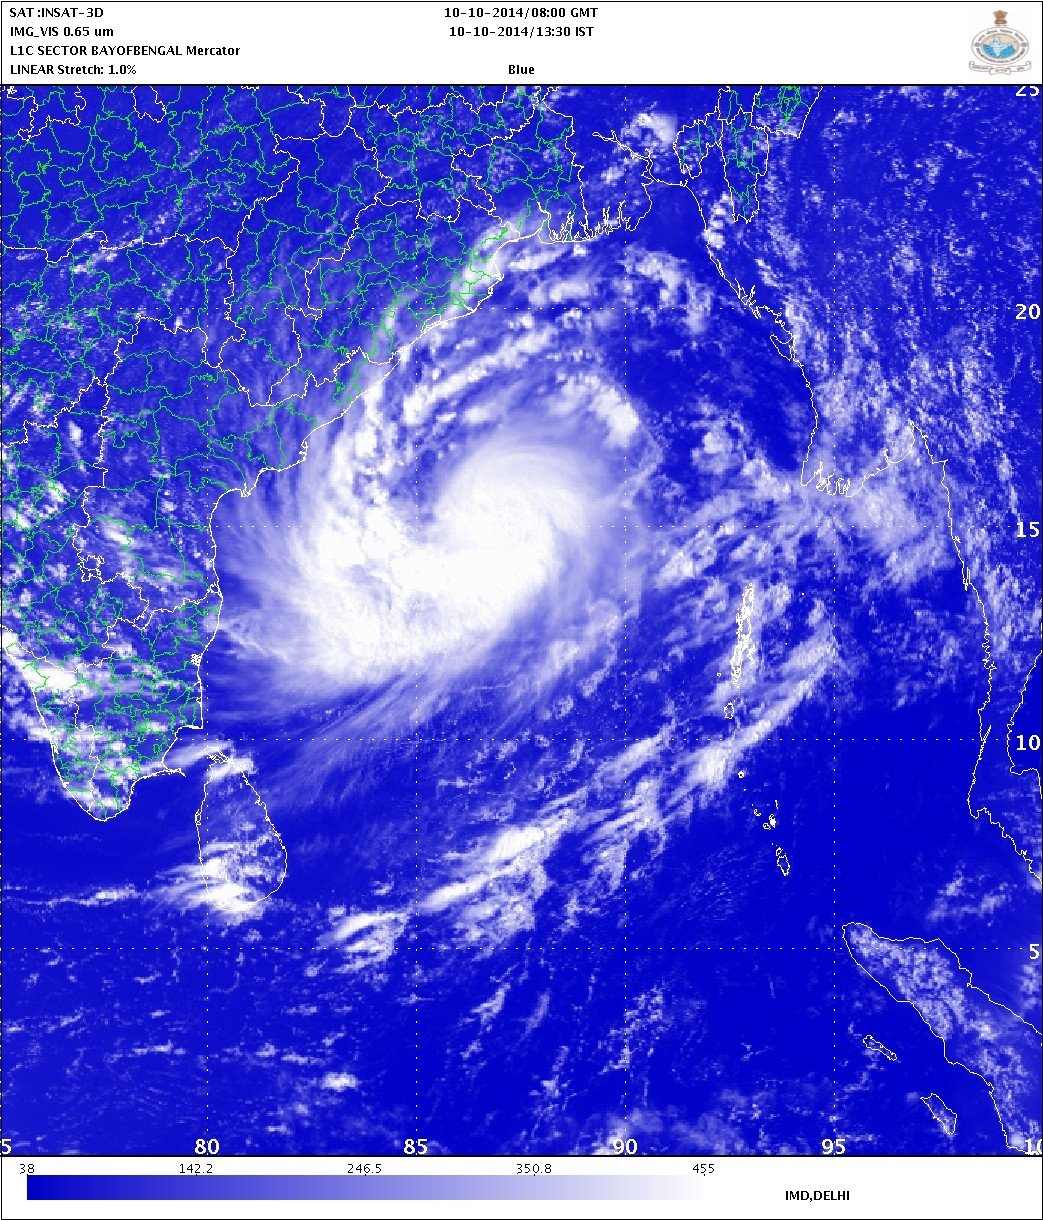 Cyclonic Storm Approaching Indian southern coast, where it will make landfall on 12 October.